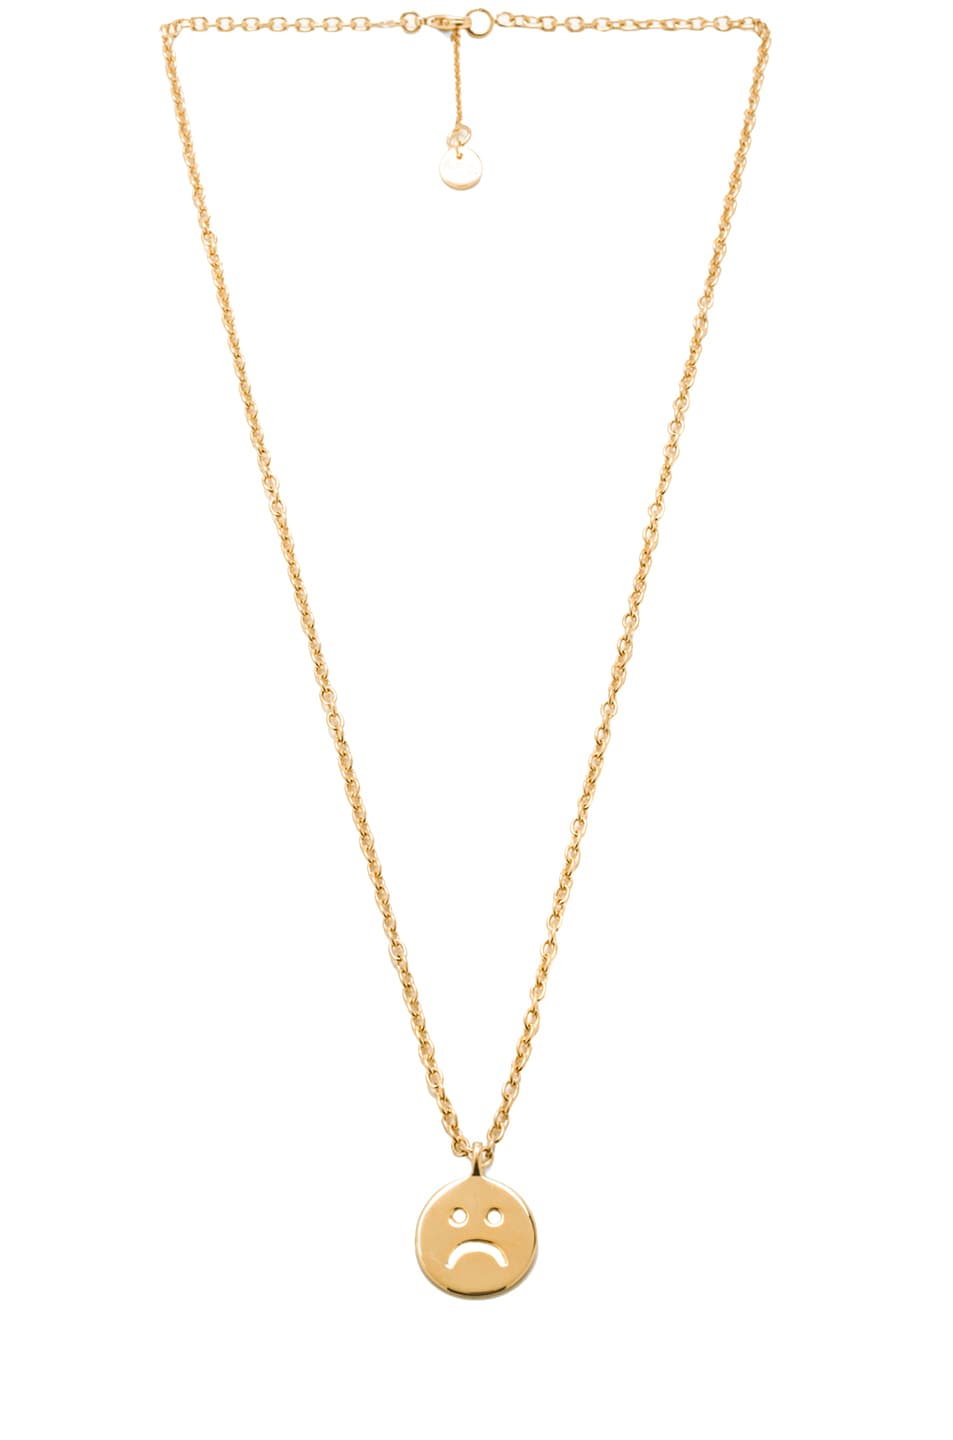 women silver vestiaire s jewellery apc collective necklace necklaces